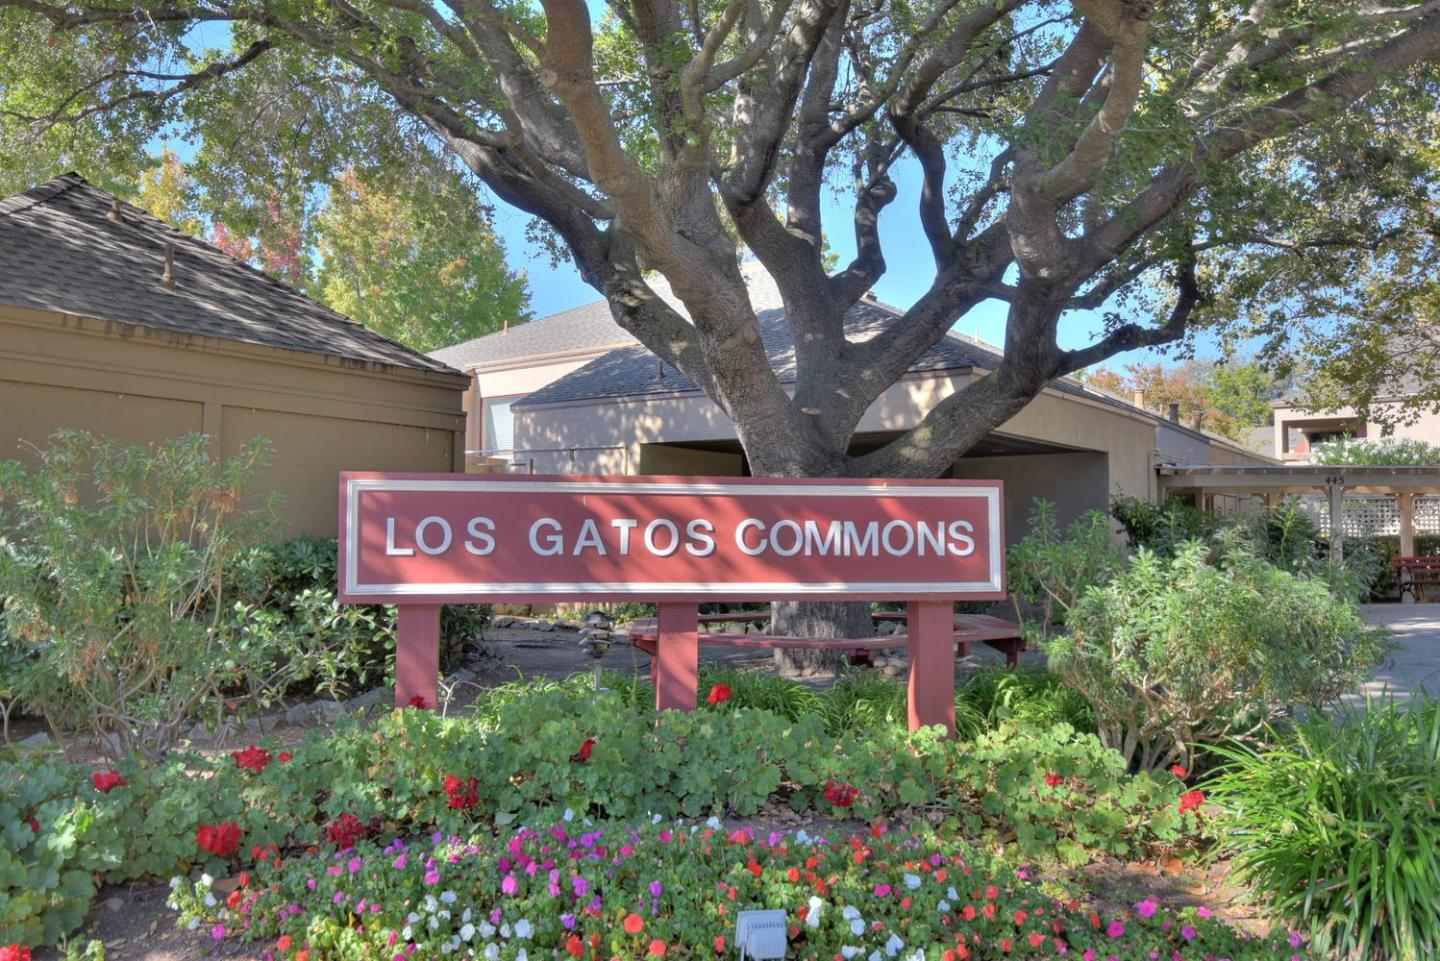 Senior Independent Living at it's best!  Relax and enjoy life in this beautiful and spacious 2 bedroom, 2 bath condo.  Plantation shutters throughout.  Amenities include the pool, spa, exercise room, outdoor green space and a fabulous community club house.  Convenient to downtown Los Gatos, Vasona Lake Park, shopping, restaurants, and Hwys 17, 9 and 85.  The large back patio adds extra living space - outdoors and can be accessed from the master suite or the living room.  You'll have your own indoor laundry.  The HOA organizes group events.